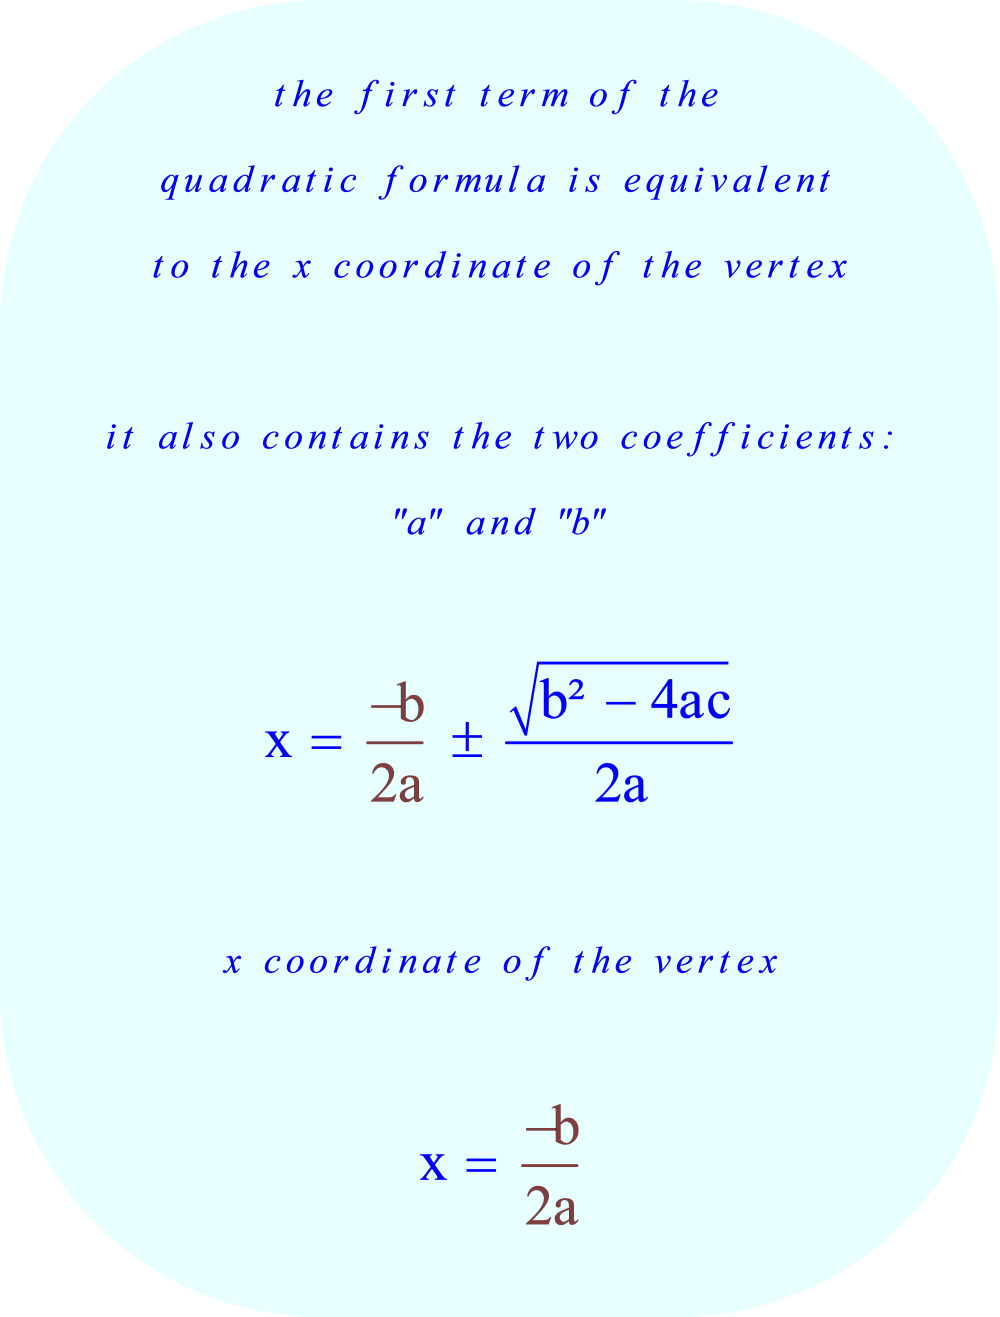 the first term of the quadratic formula is equivalent to the x coordinate of the vertex of the parabola